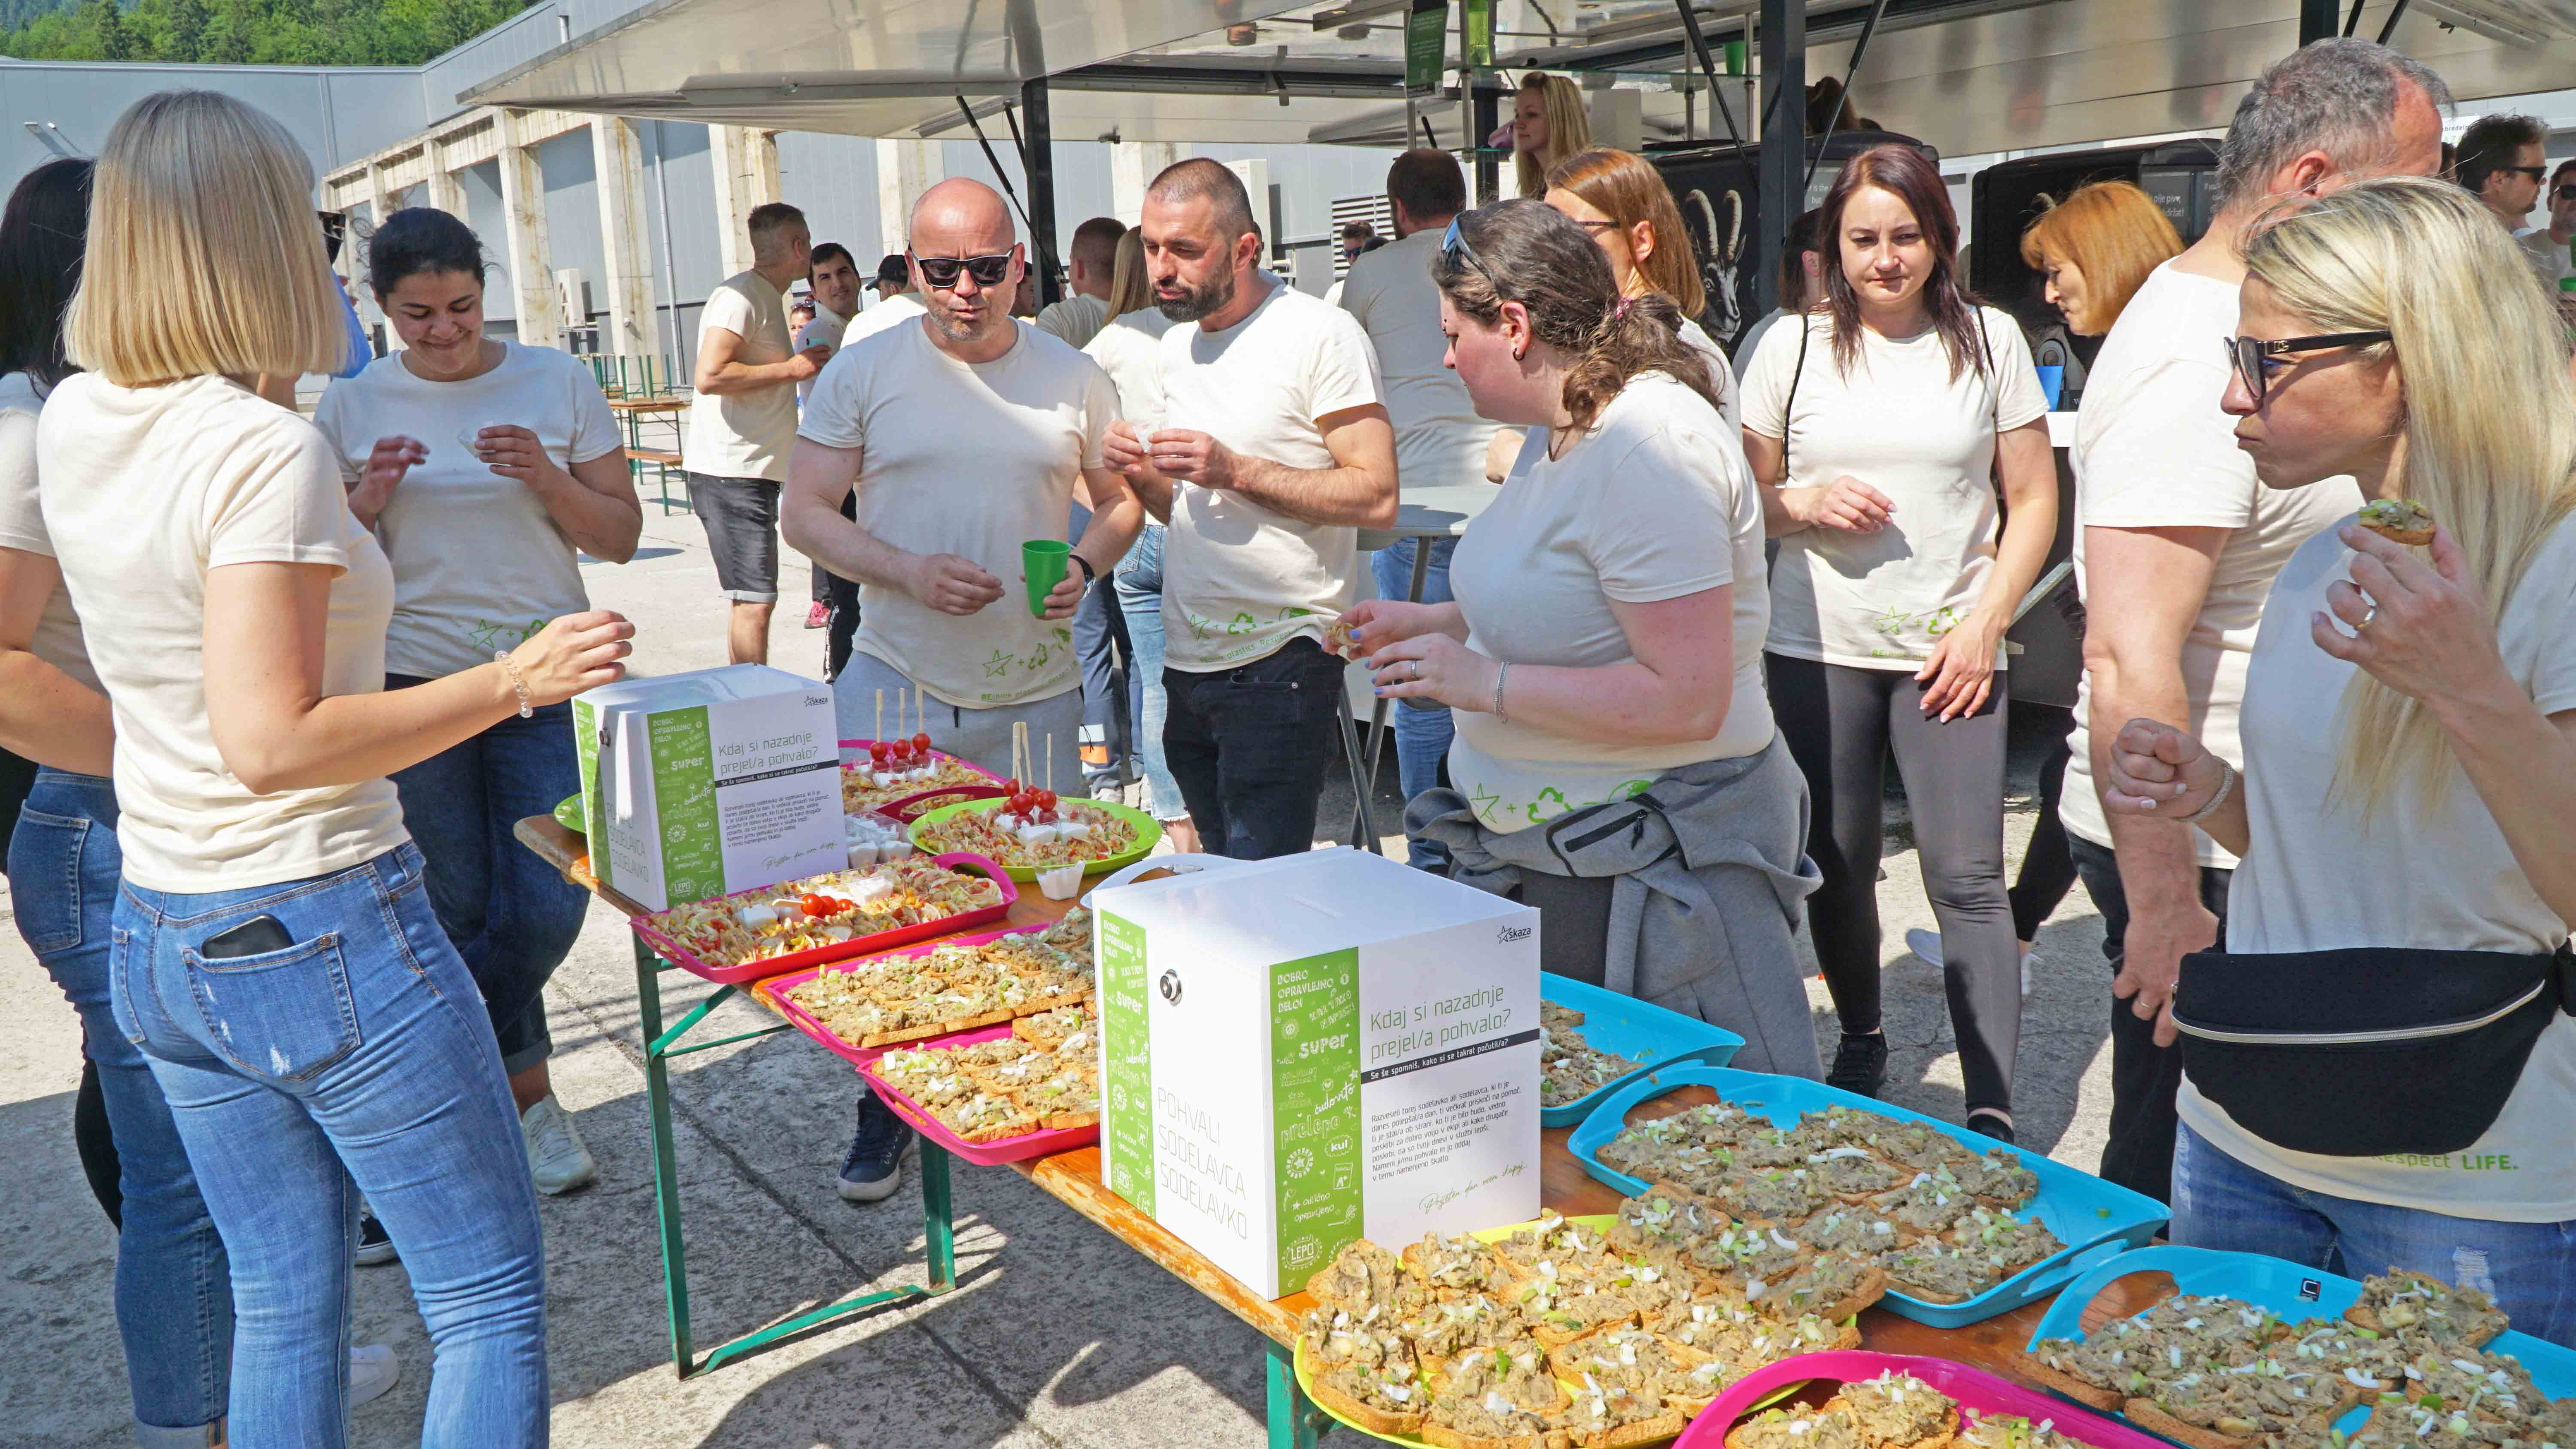 Our experienced culinary masters competed for the title of BEST ŠKD LUNCH